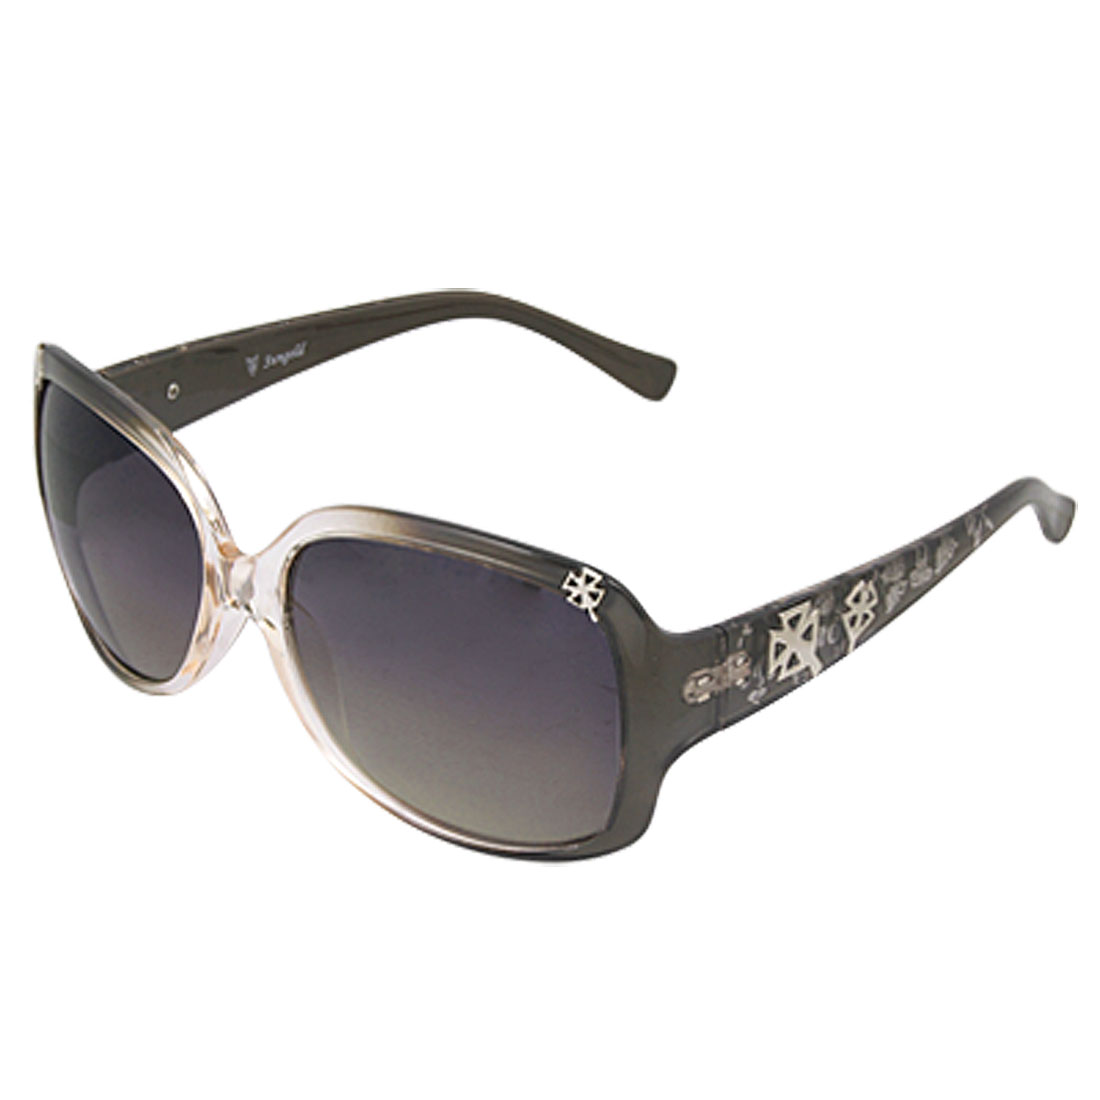 Ladies UV Protection Full Rim Big Lens Printed Plastic Arms Sunglasses